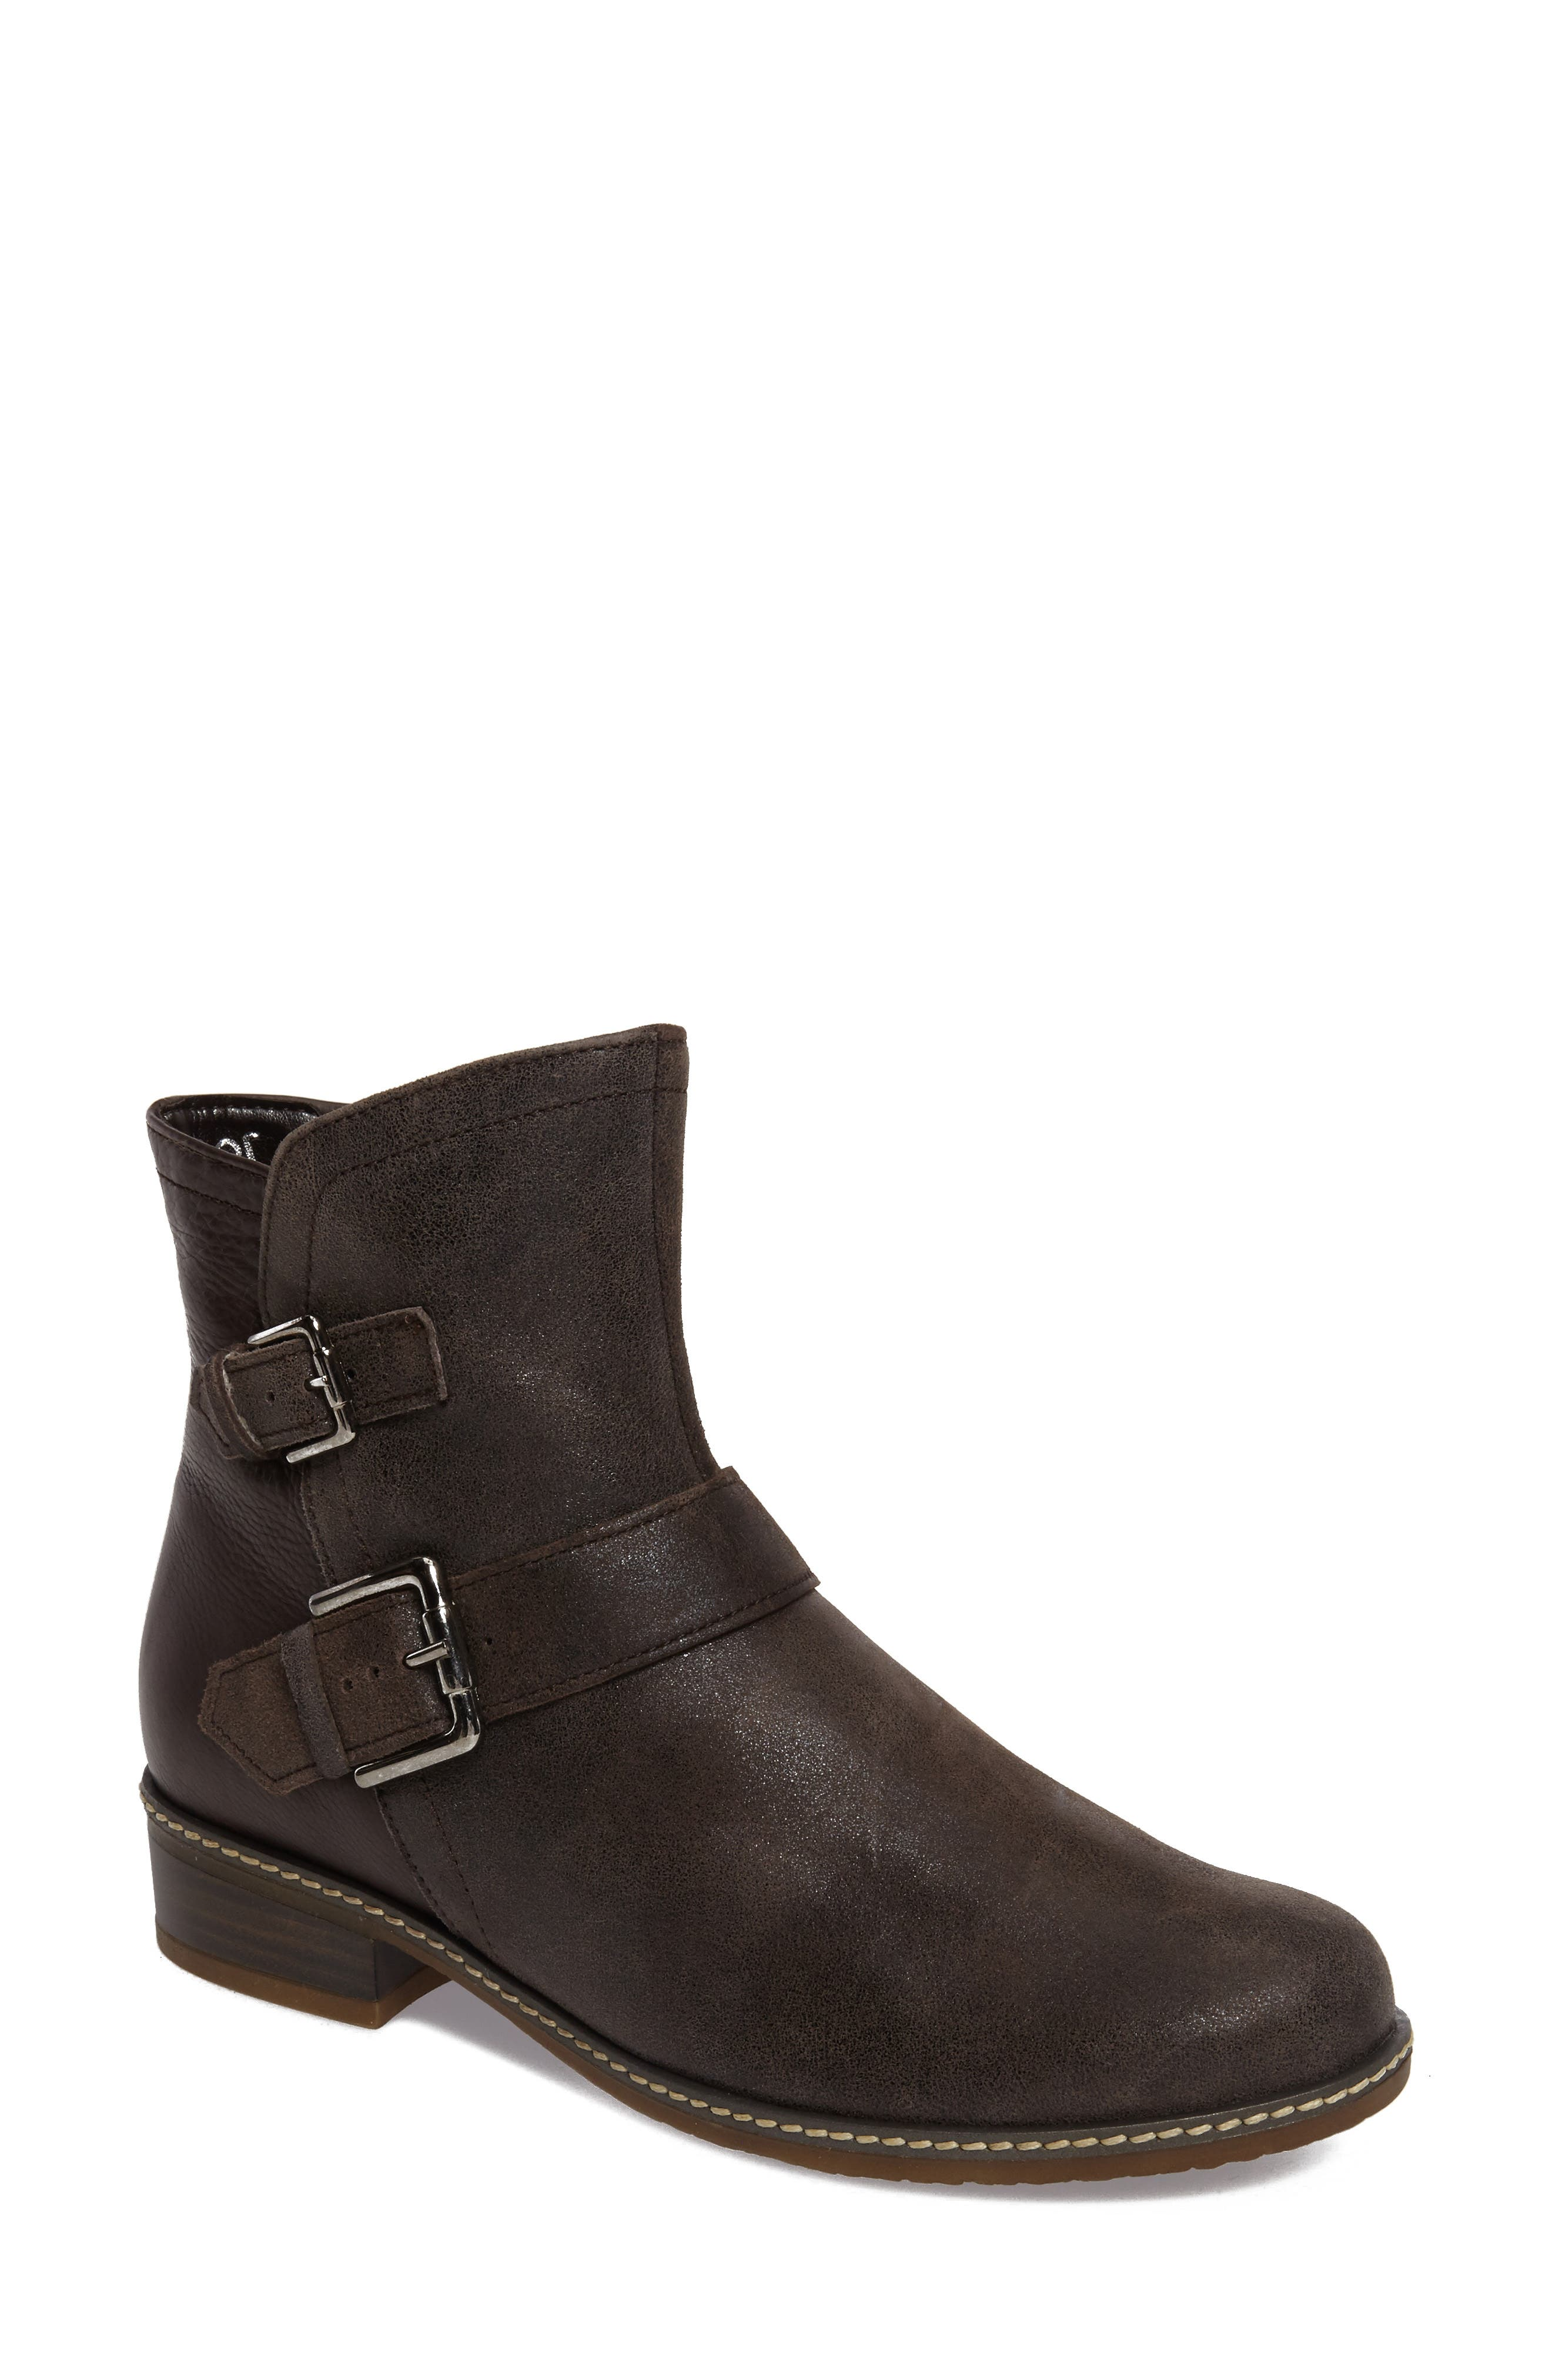 Buckle Bootie,                             Main thumbnail 1, color,                             Brown Leather